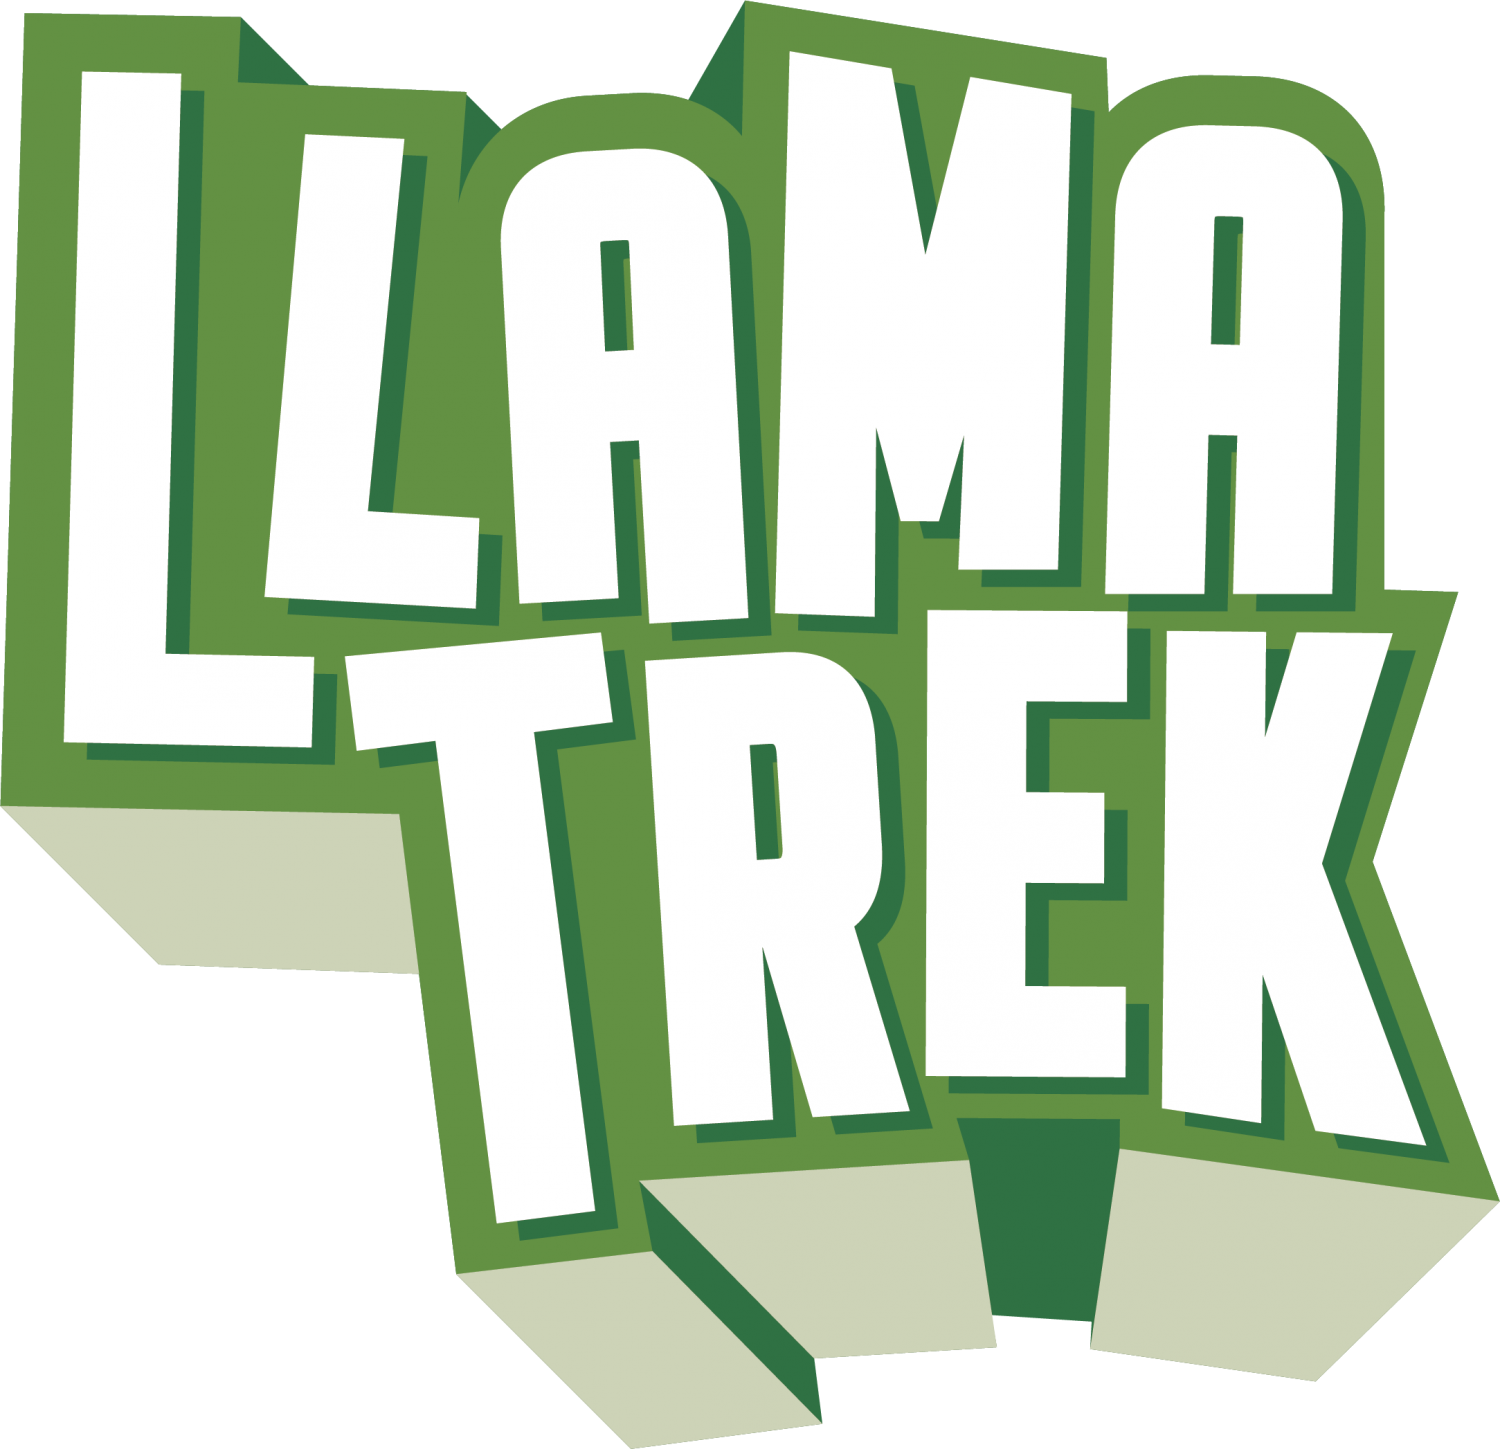 classyllama: Not at #MagentoImagine, but want to try Llama Trek video game? We've got you covered: https://t.co/qRKdneV19p